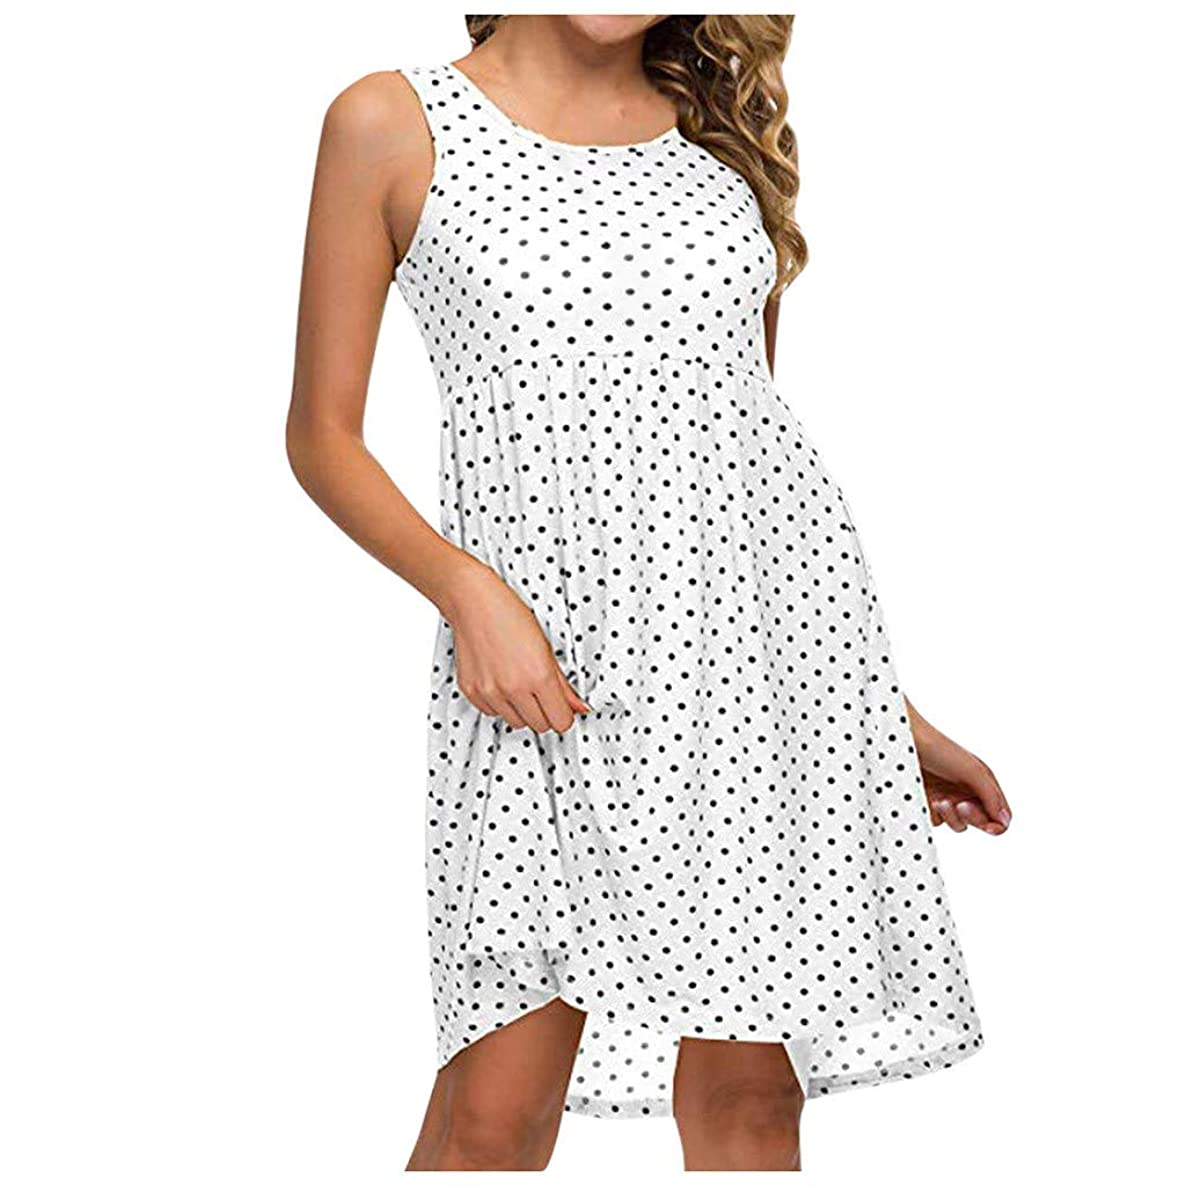 Big Sale,Yetou?Women's Party Dress Summer Casual Dot Print O-Neck Cold Should Sleeveless Mini Dress